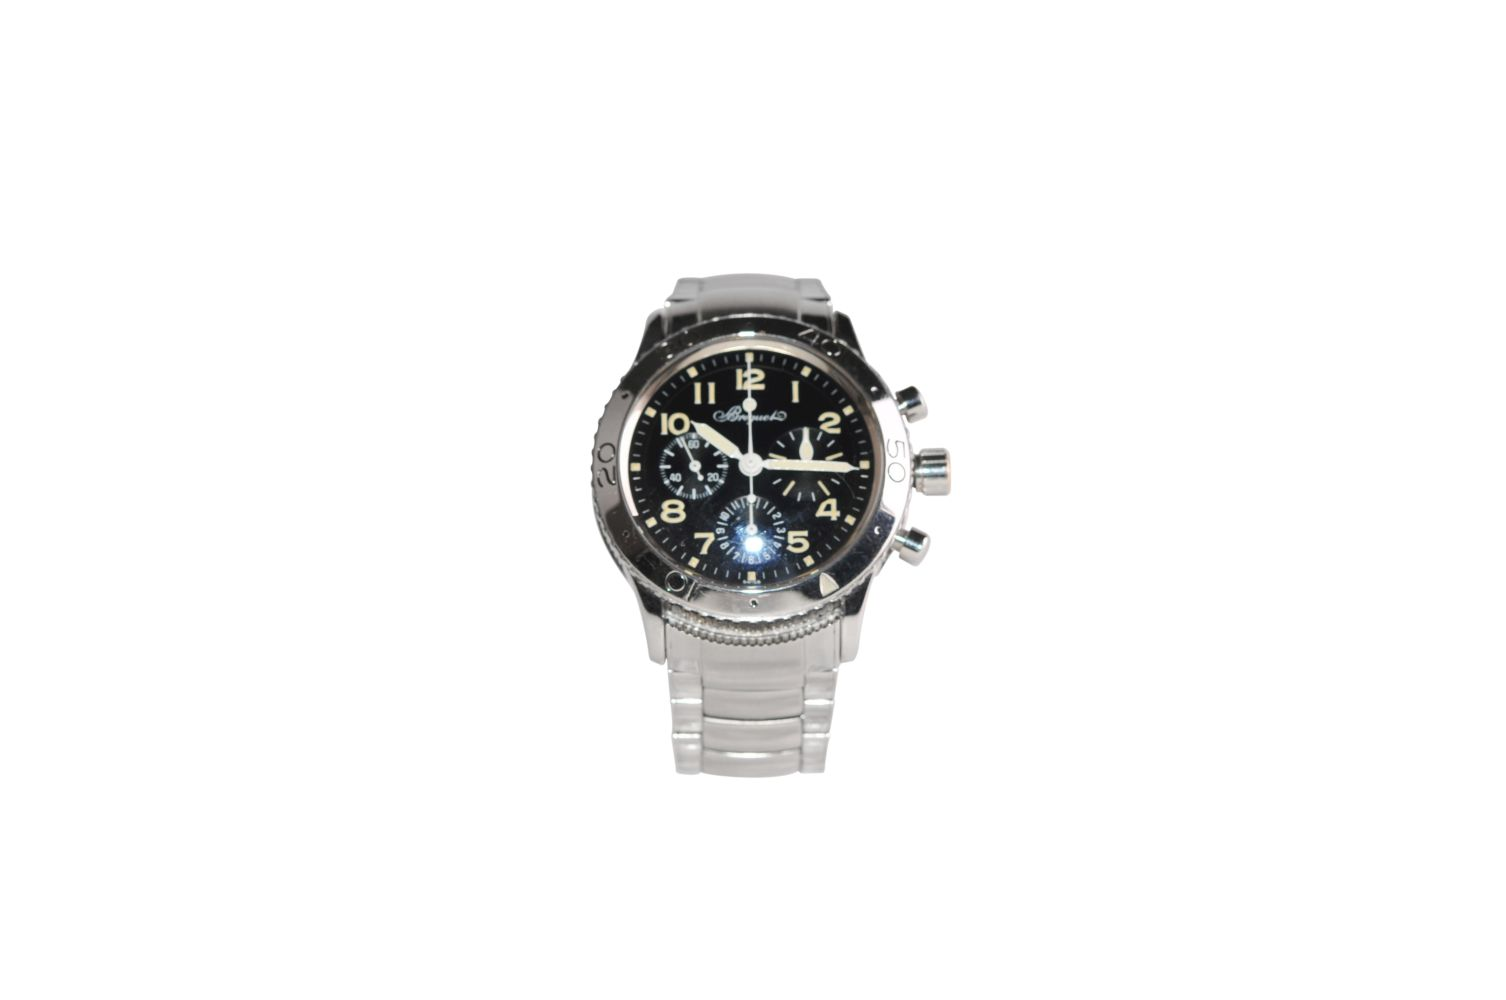 BREGUET Type XX AeronavaleSteel watch with steel strap automatic chrono 39 mm without box without